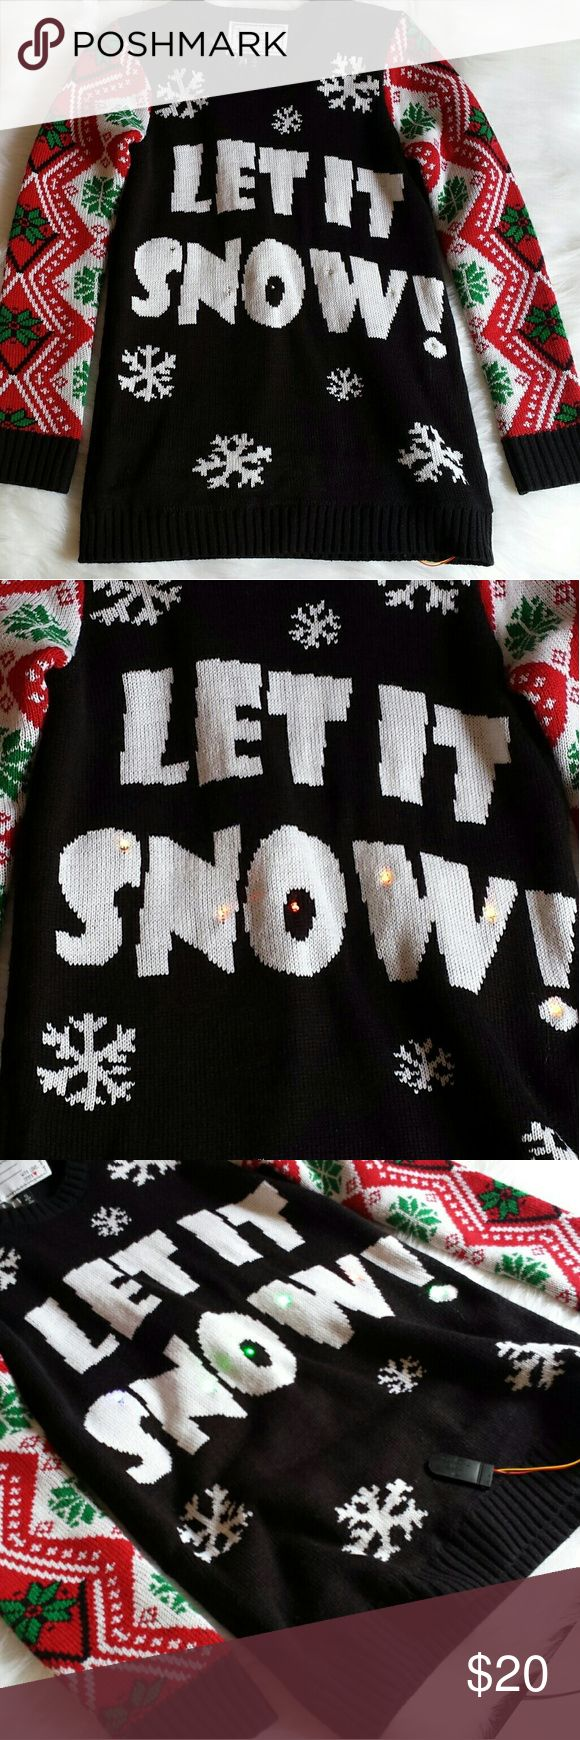 Derek heat Light up Christmas sweater Christmas sweater that lights up with a switch that fits easily in your pocket. Color changes and flashes. Used once for a party. Derek Heart Sweaters Crew & Scoop Necks